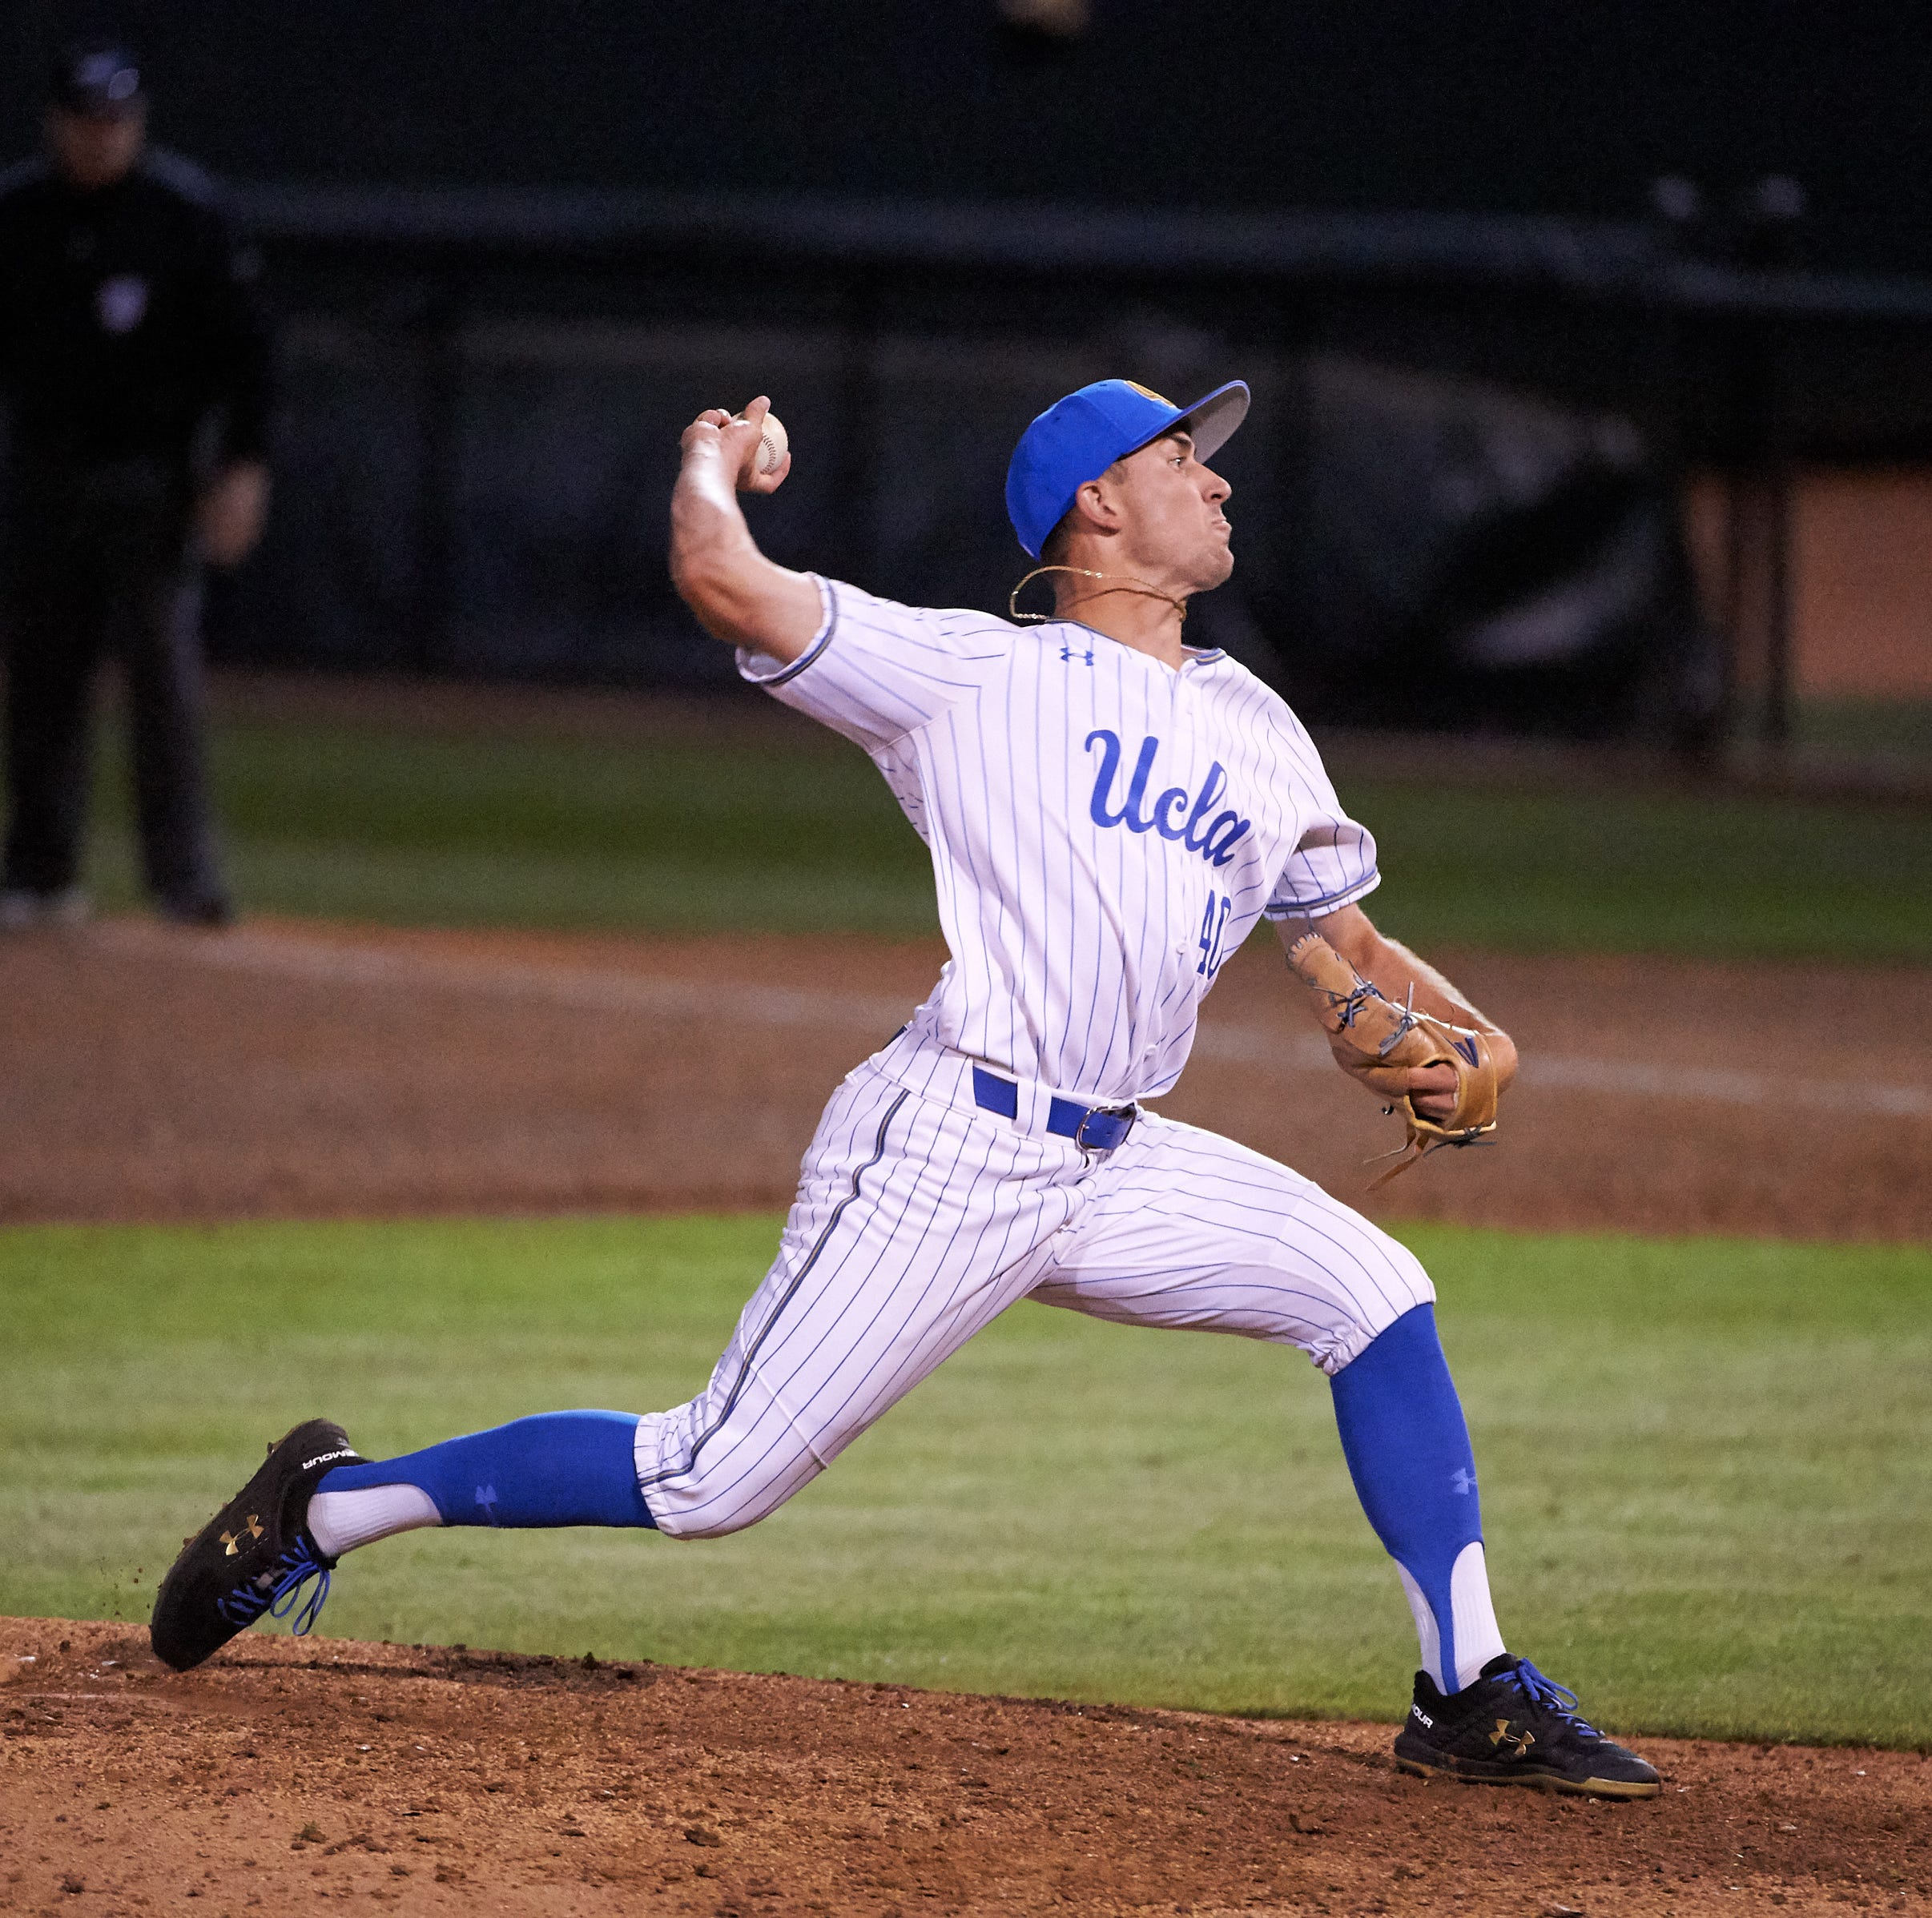 Remember Holden Powell? He's now a closer on UCLA's top-ranked baseball team